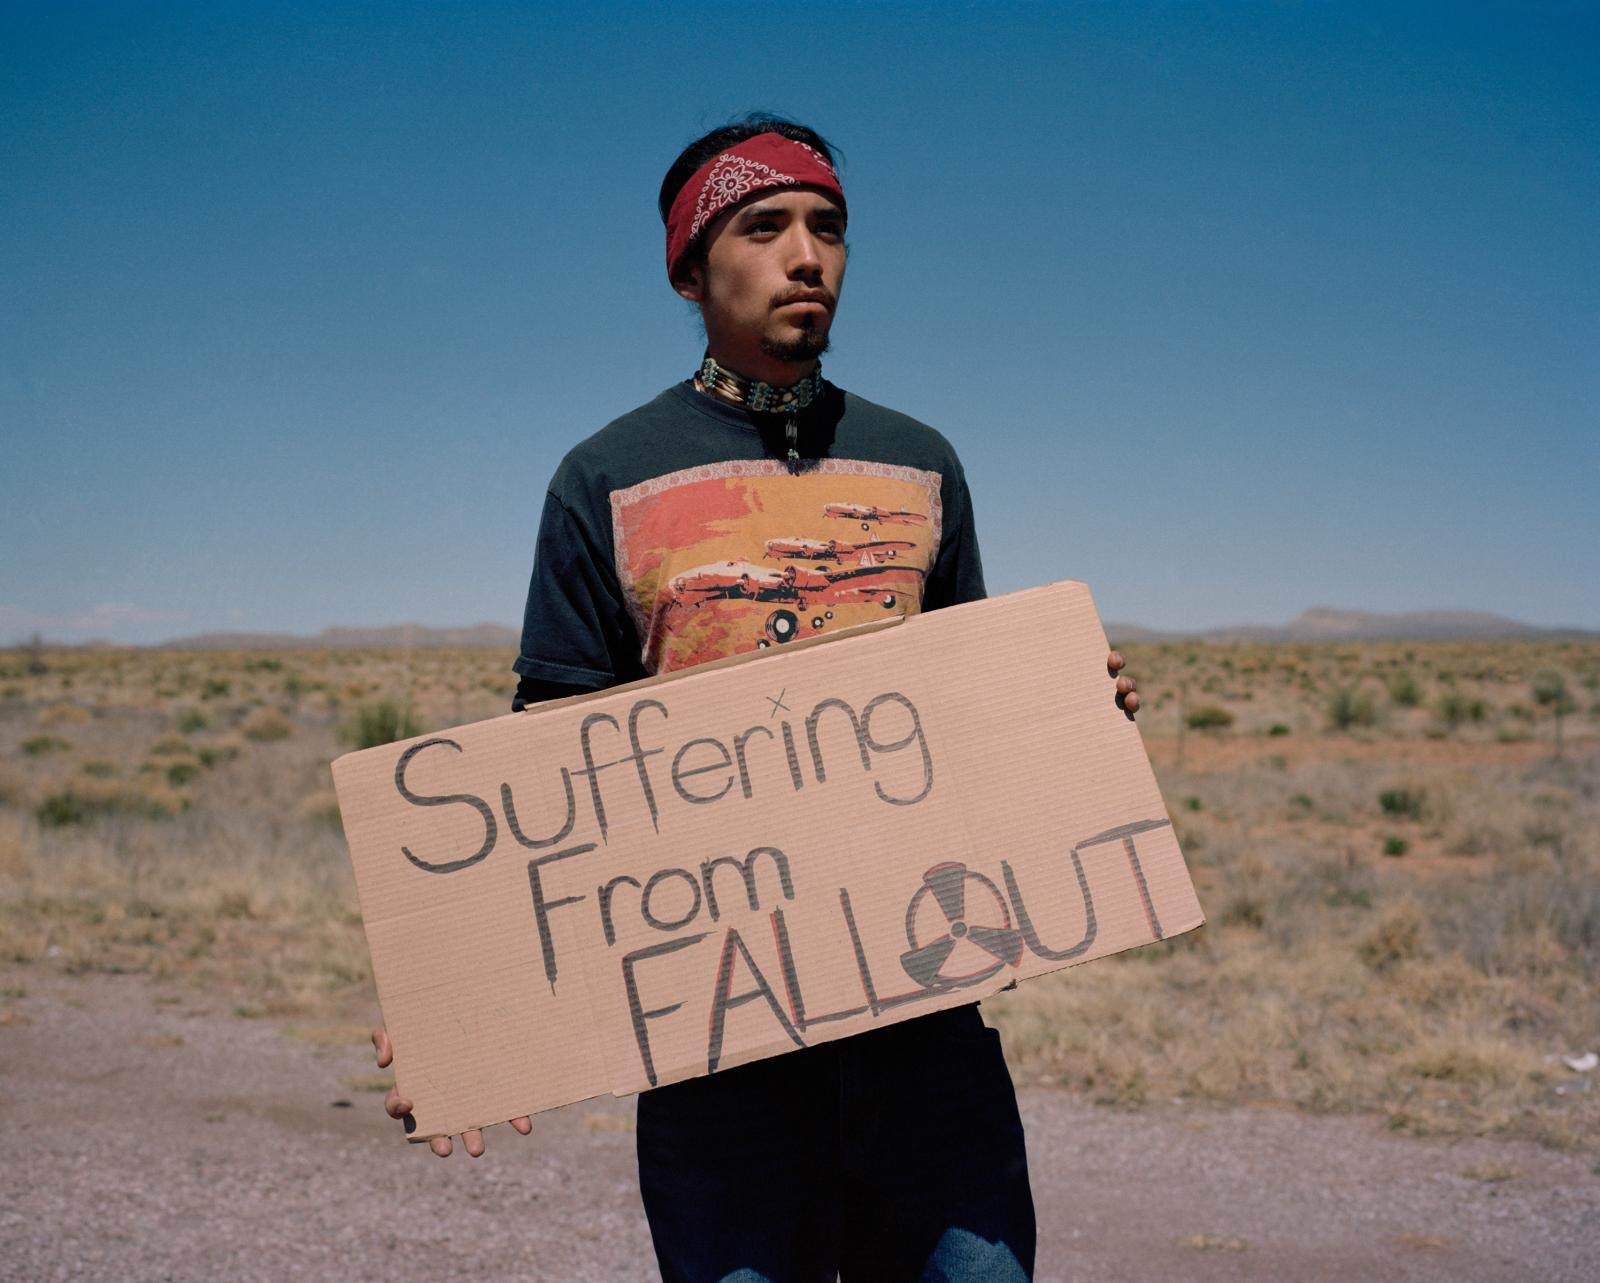 Jacob Olascoaga, White Sands Missile Range, New Mexico, USA, April 2, 2016  Jacob Olascoaga, 21 years old from Tularosa / Mescalera protests outside the entrance to the Stallion Gate near the Trinity Site. Jacob was diagnosed with leukemia at age 11 which he attributes to the 1945 atomic test. Residents of New Mexico were never included in the RECA  (radiation exposure compensation act) and want compensation for what they say are cancers related to the atomic test.